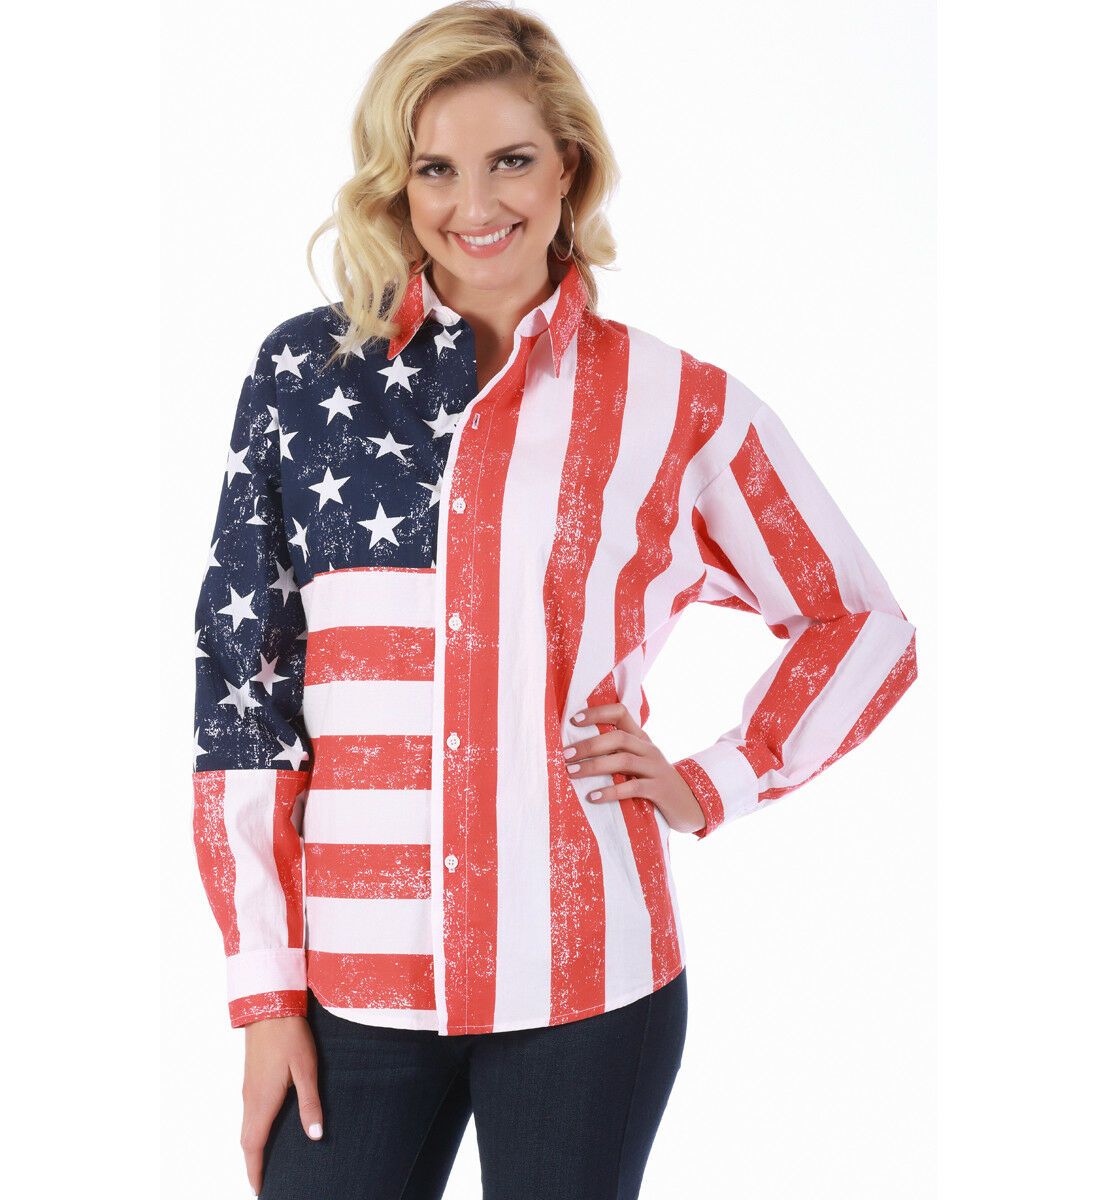 American flag shirt with long sleeves